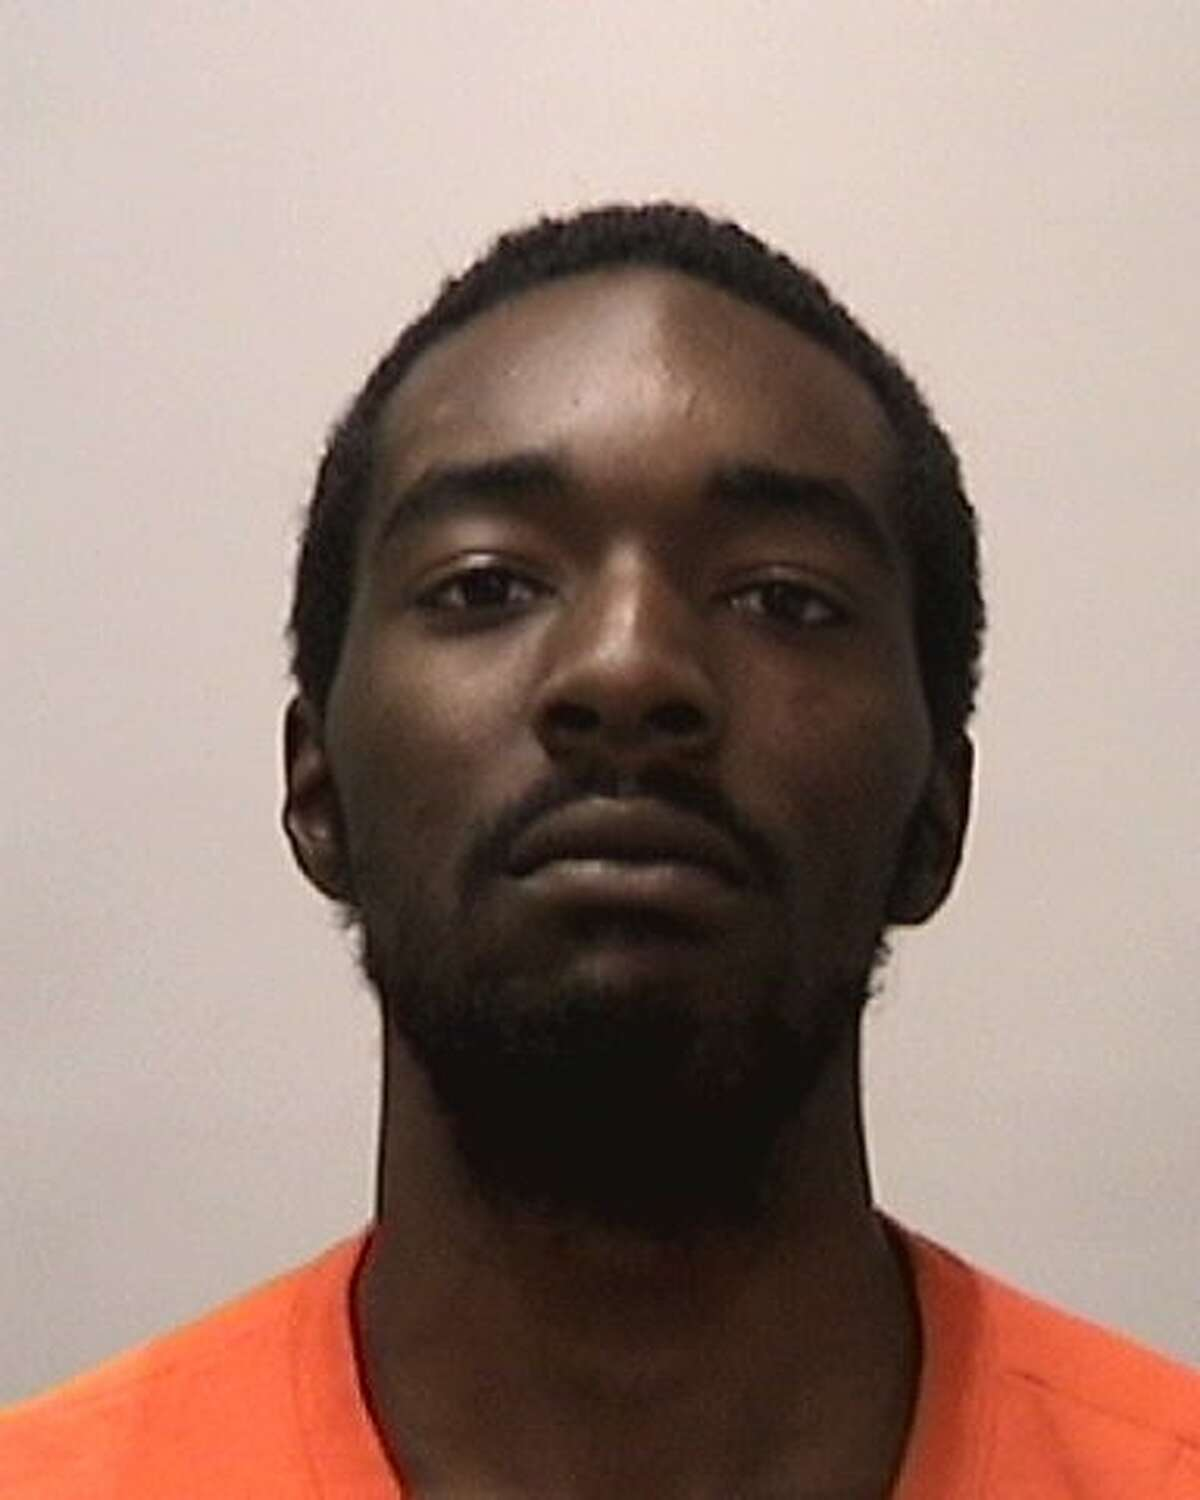 Kordell Jamal Carter, 20, of Santa Rosa, was charged with robbery, conspiracy, possession of stolen property, firearms charges in connection with an alleged armed robbery in San Francisco's Russian Hill on June, 25, 2016. He was also booked on a felony burglary warrant from Marin County.